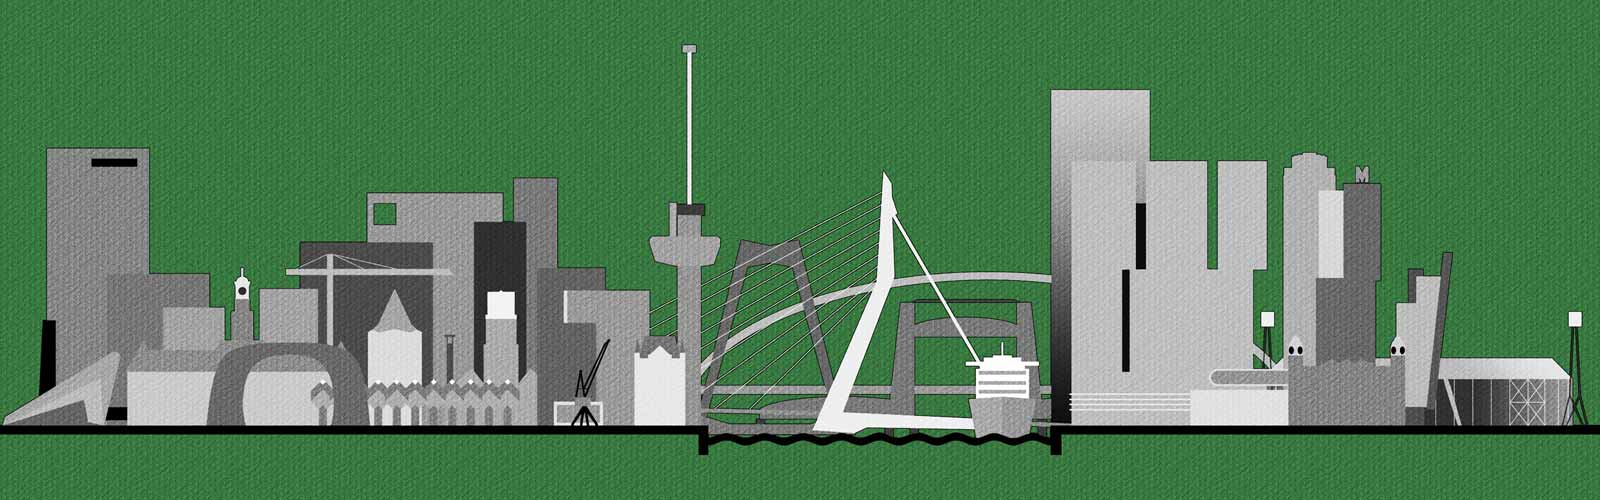 Graphical representation of the Rotterdam skyline, with the most important buildings, bridges and other landmarks, printed on a green t-shirt